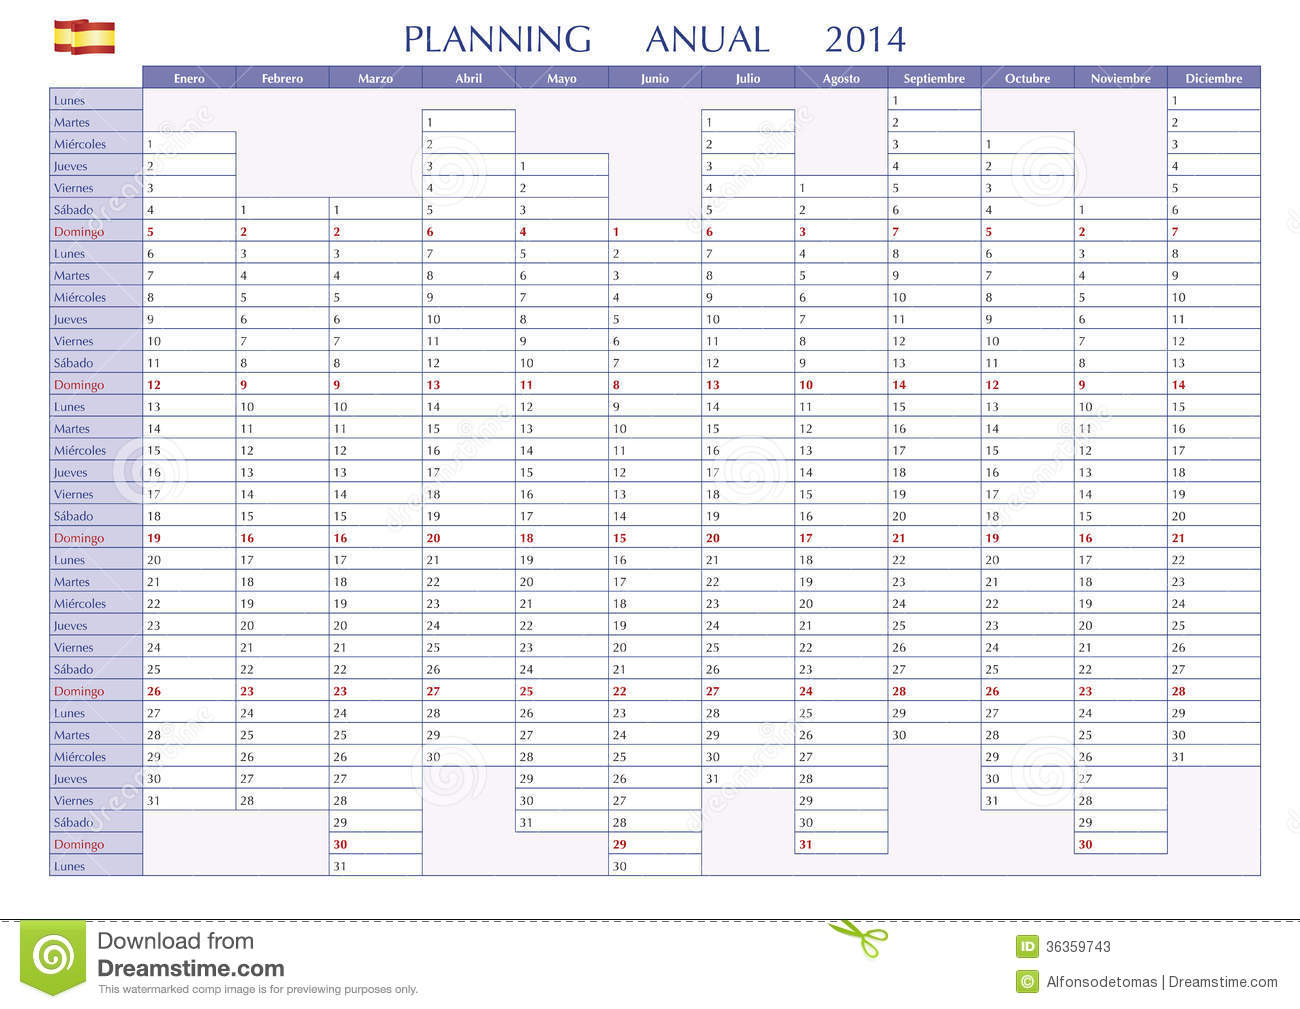 Planning 2014 spanish stock vector illustration of july for Yearly planning calendar template 2014